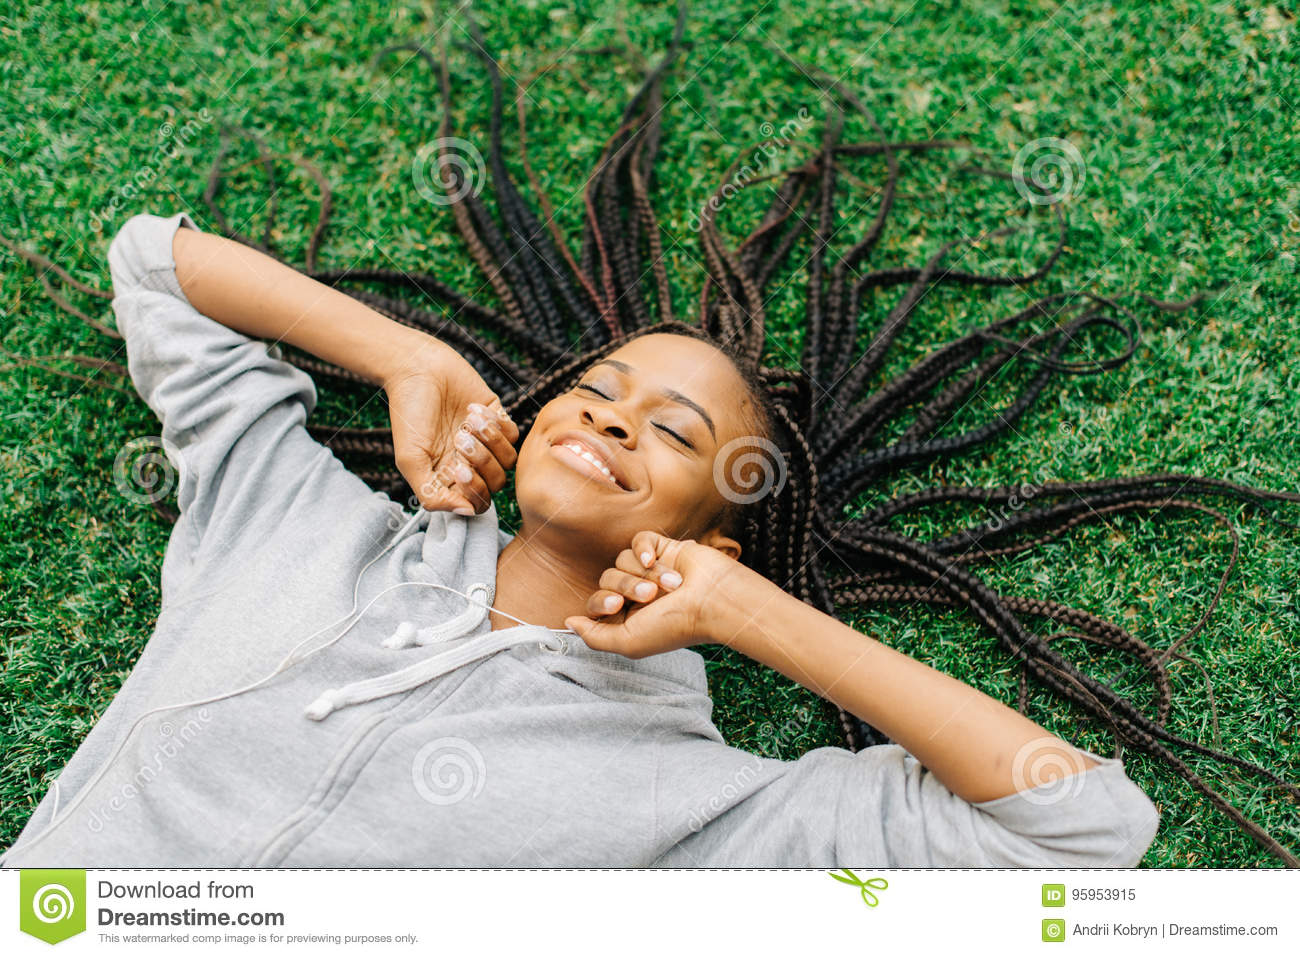 Emotional portrait of the joyful afro-american woman moving hands while laying on the grass and listening to music.